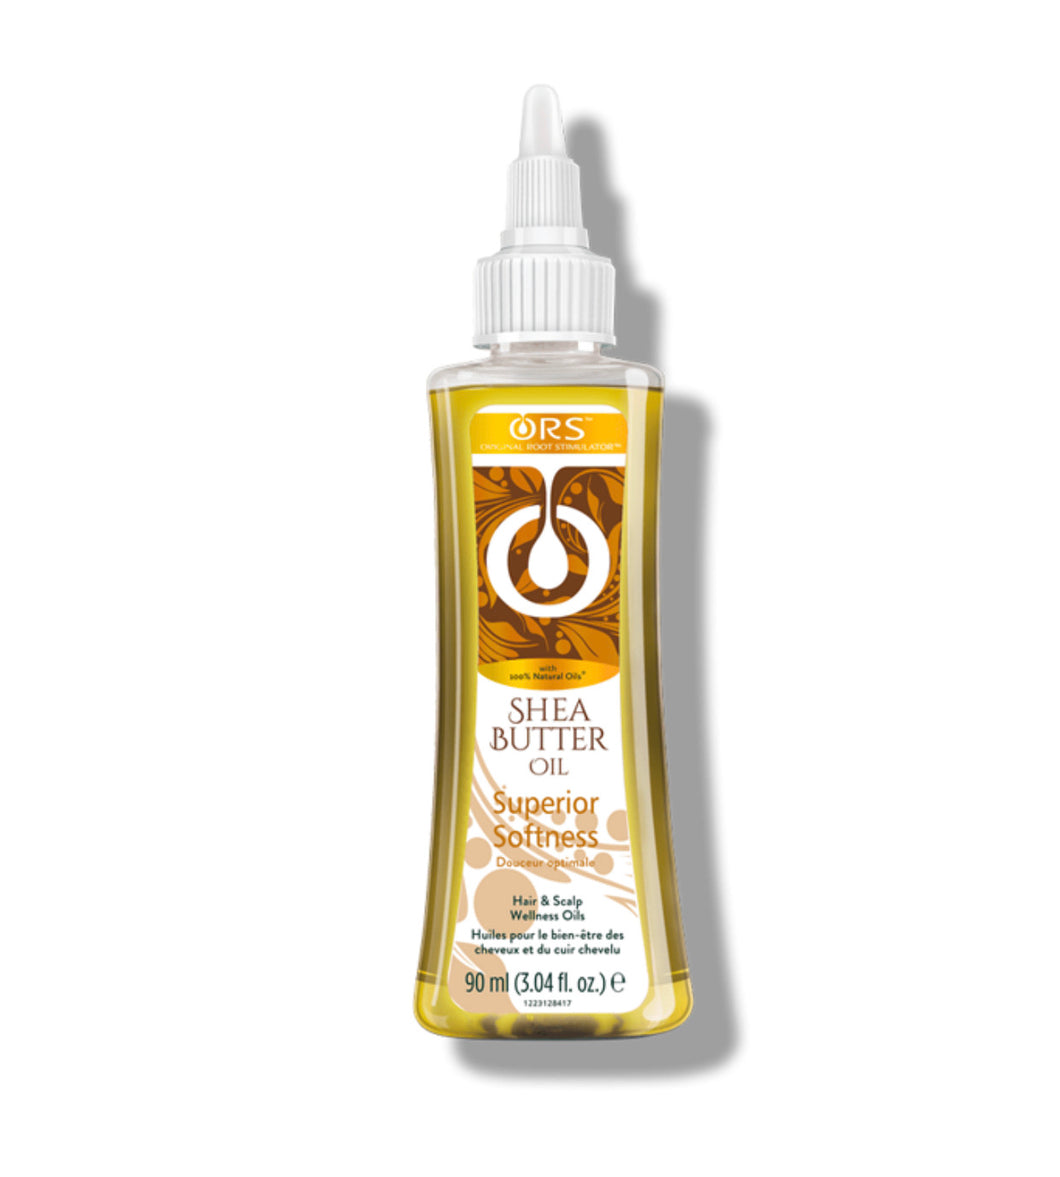 ORS Shea Butter Hair & Scalp Wellness Oil 3.04 fl oz